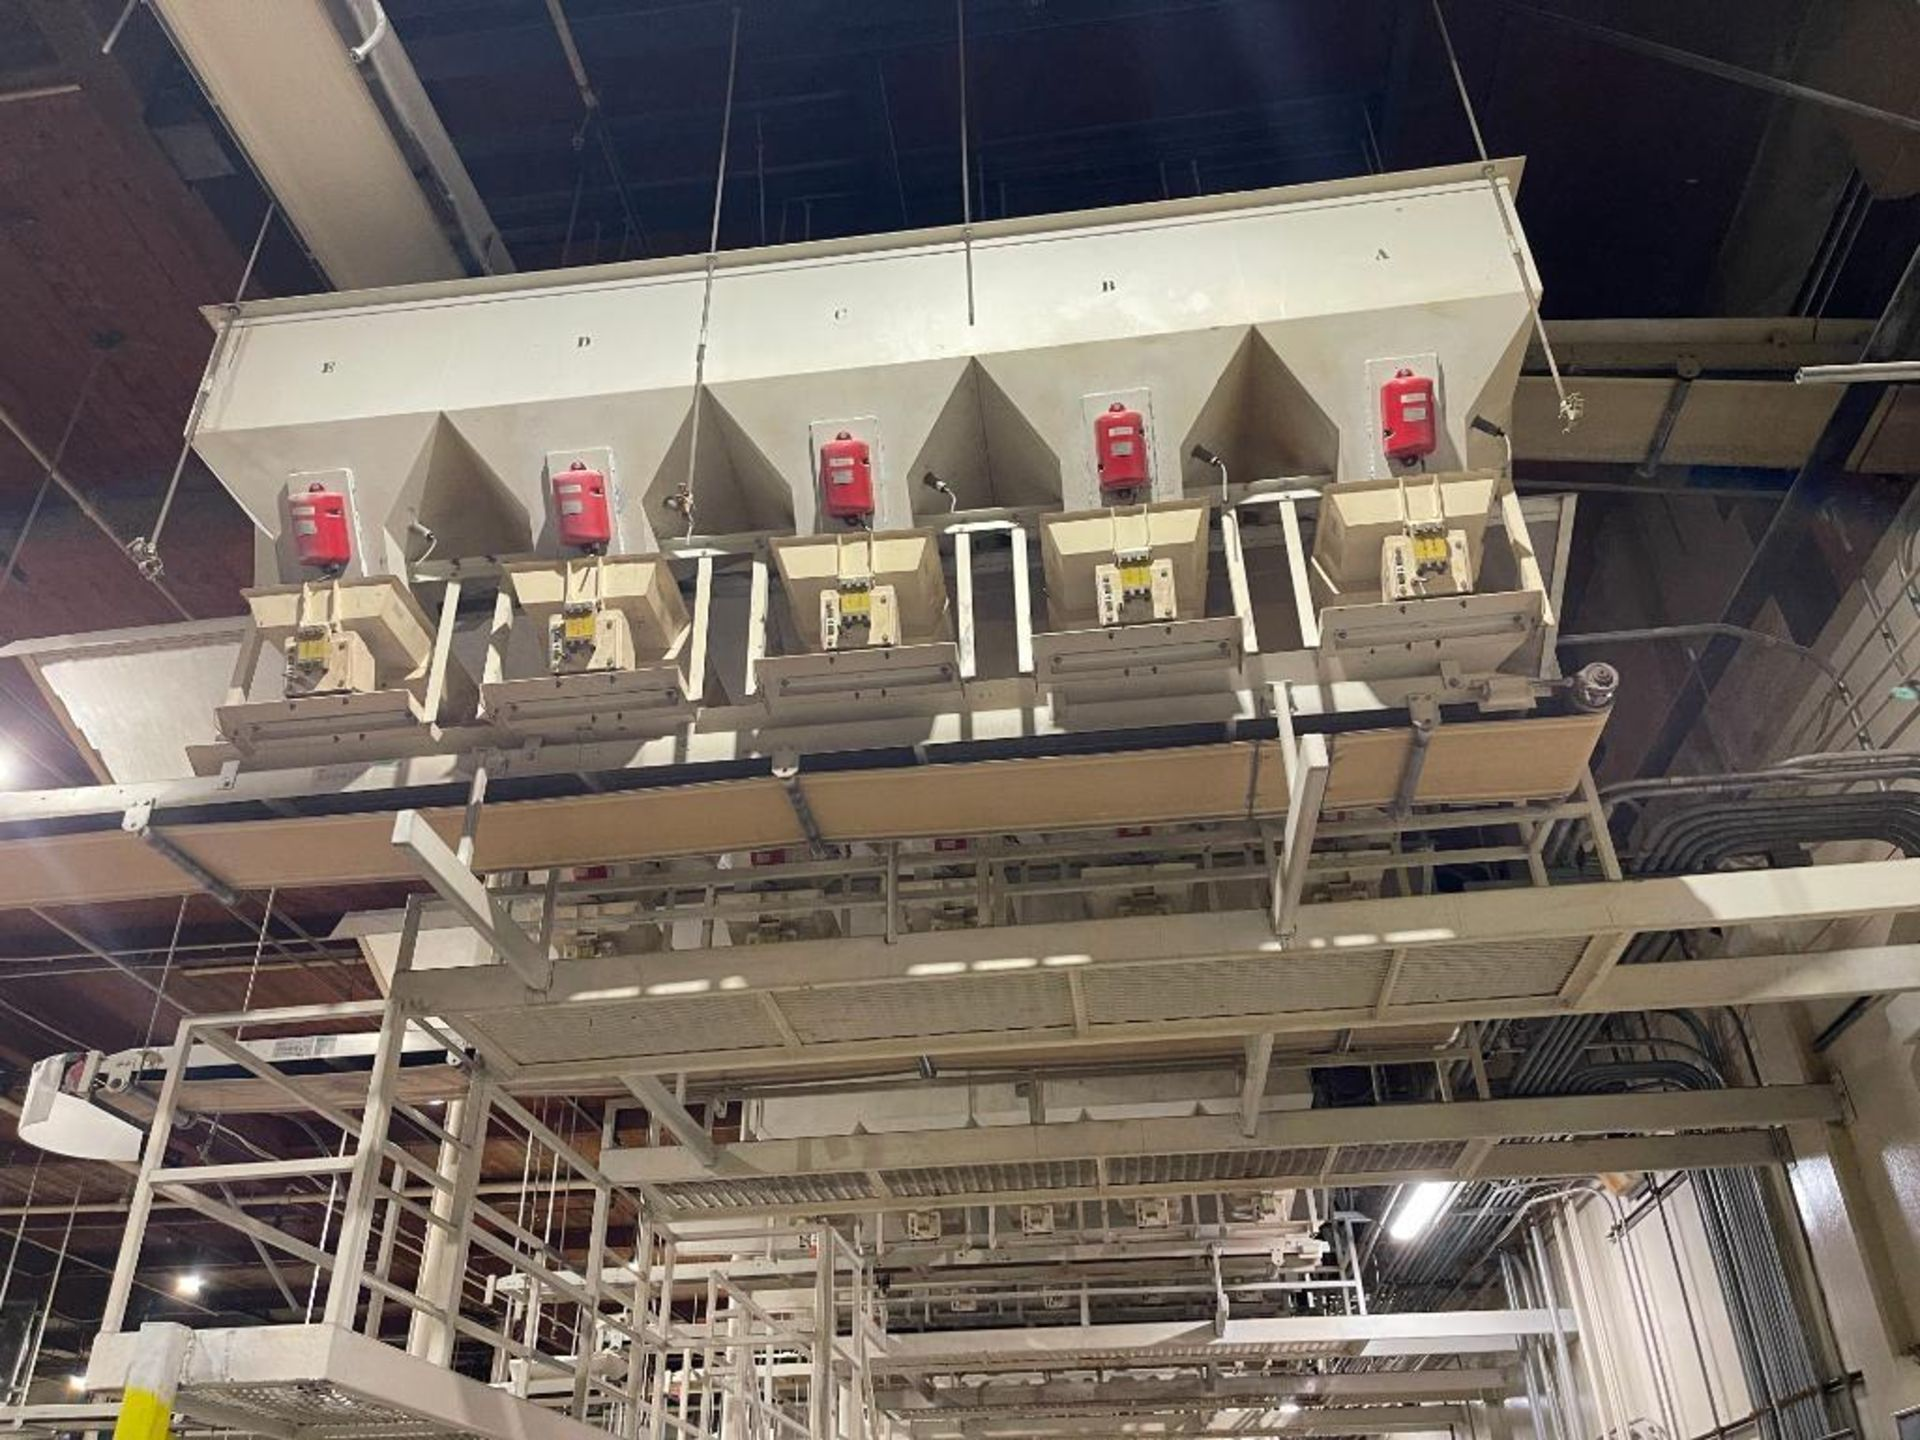 Aseeco 5-bin blending system with 5 Syntron vibratory feeders on bottom - Image 5 of 6